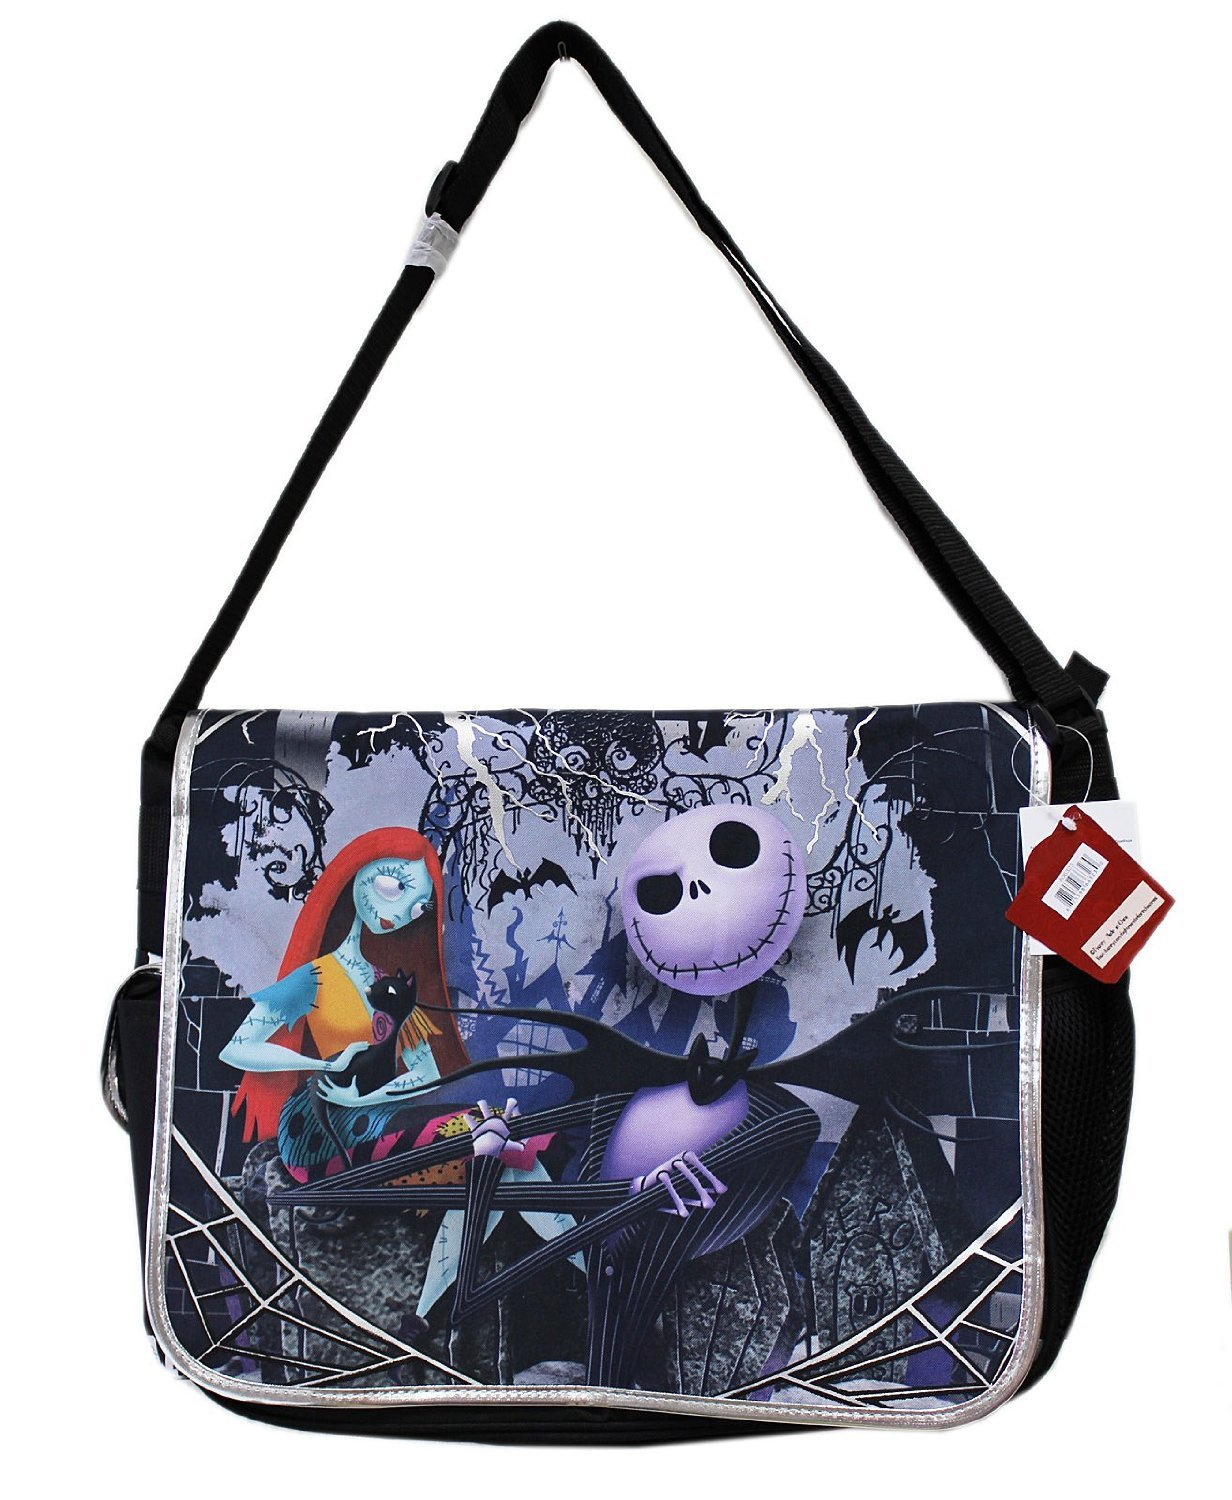 Disney Tim Burton's the Nightmare Before Christmas Large Messenger Bag Accessory Innovations 3230